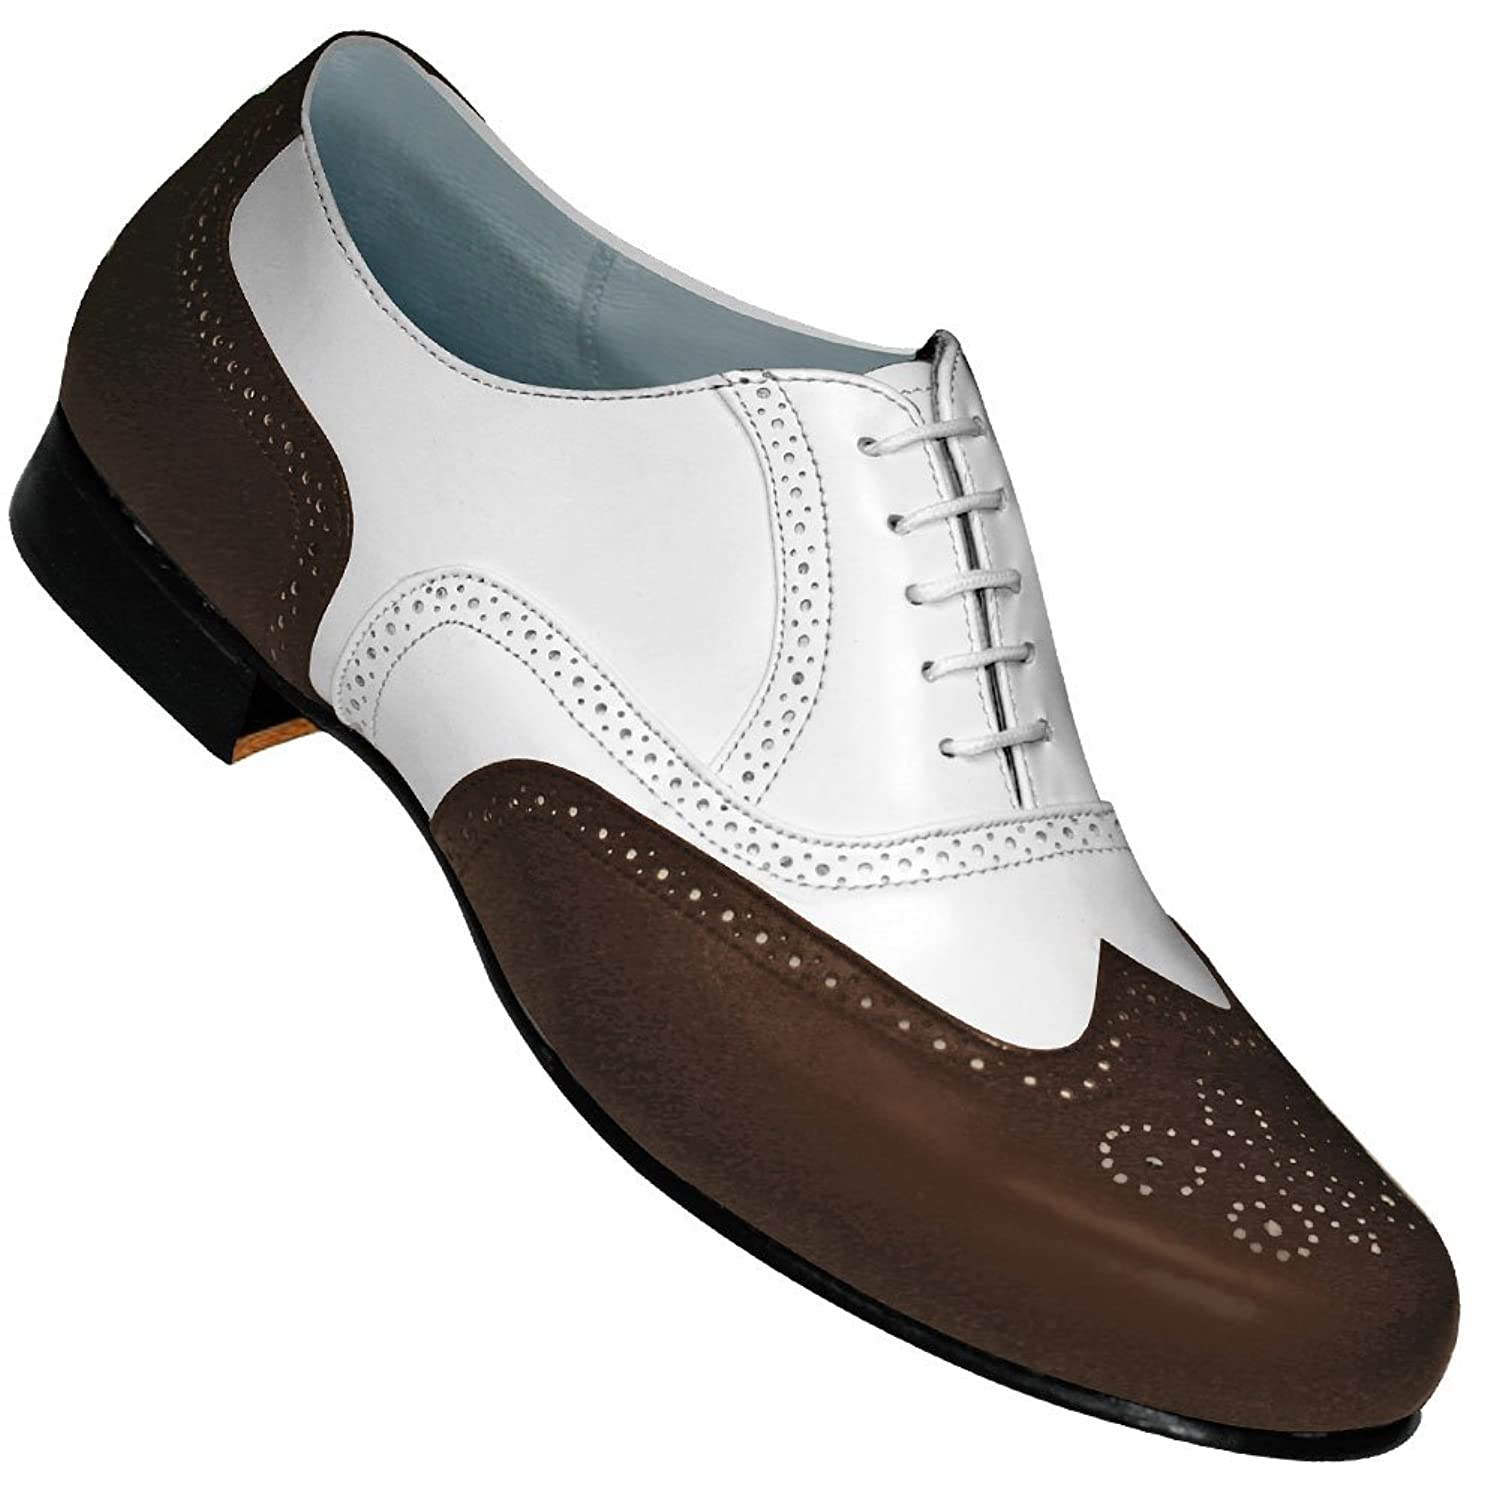 1950s Style Mens Shoes Aris Allen Mens 1930s Brown and White Spat Style Wingtip Dance Shoe $48.95 AT vintagedancer.com